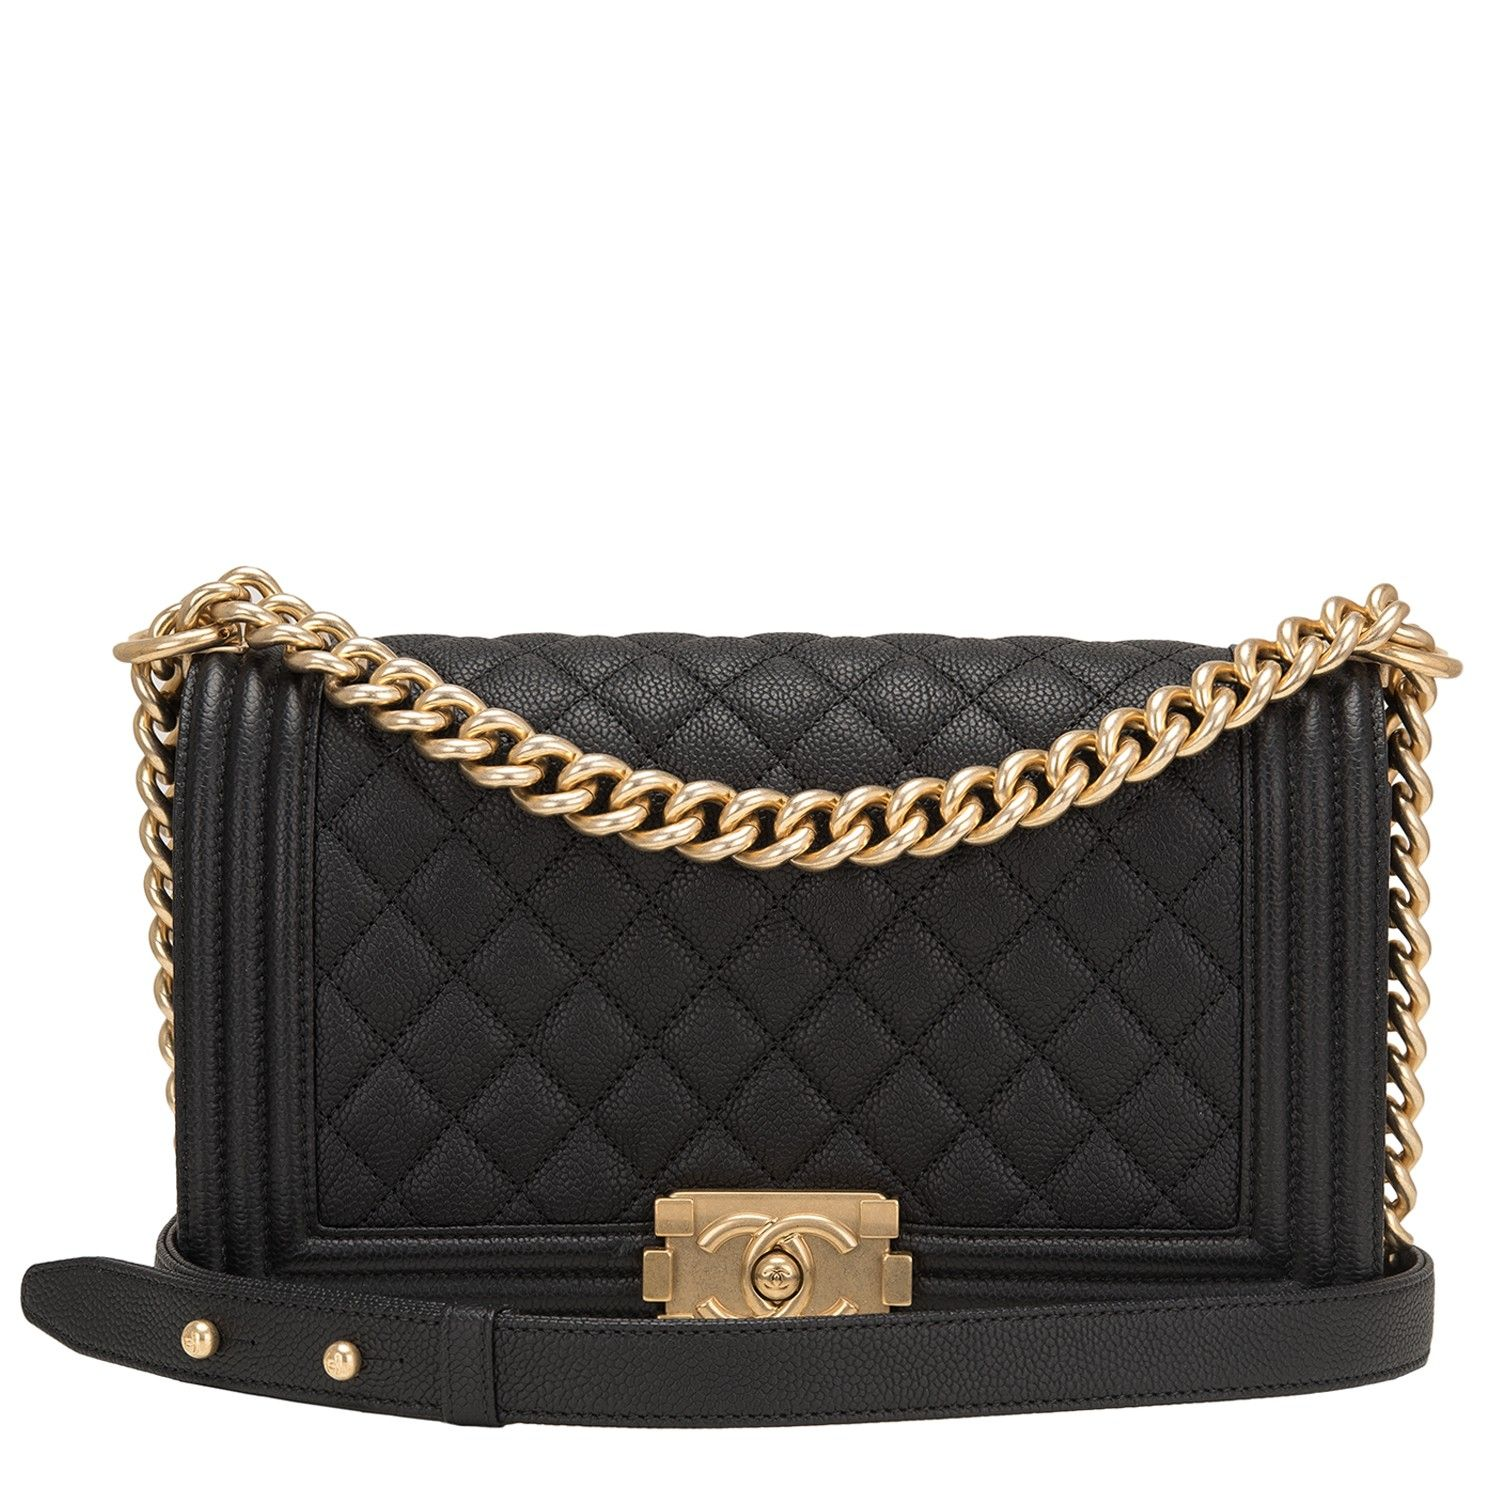 Leather quilted handbags and purses - Chanel Old Medium Boy Bag Of Black Quilted Caviar Leather And Antique Gold Hardware This Chanel Bag Is In The Classic Boy Style With A Full Front Flap With